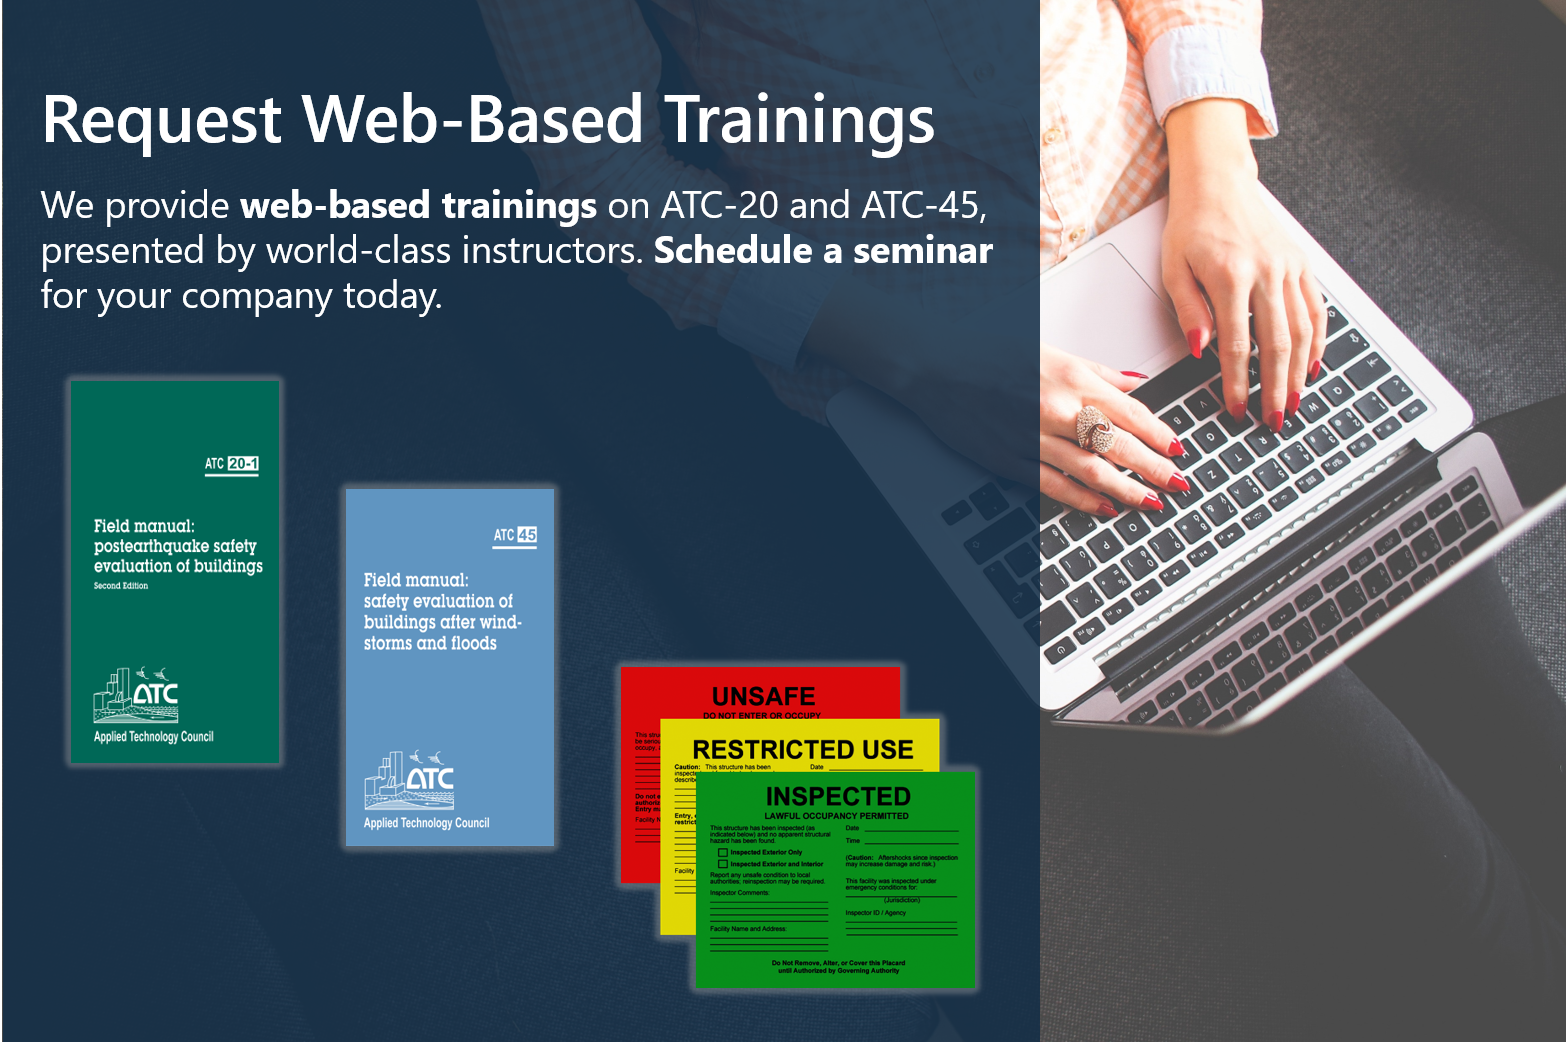 Request Web-Based Trainings